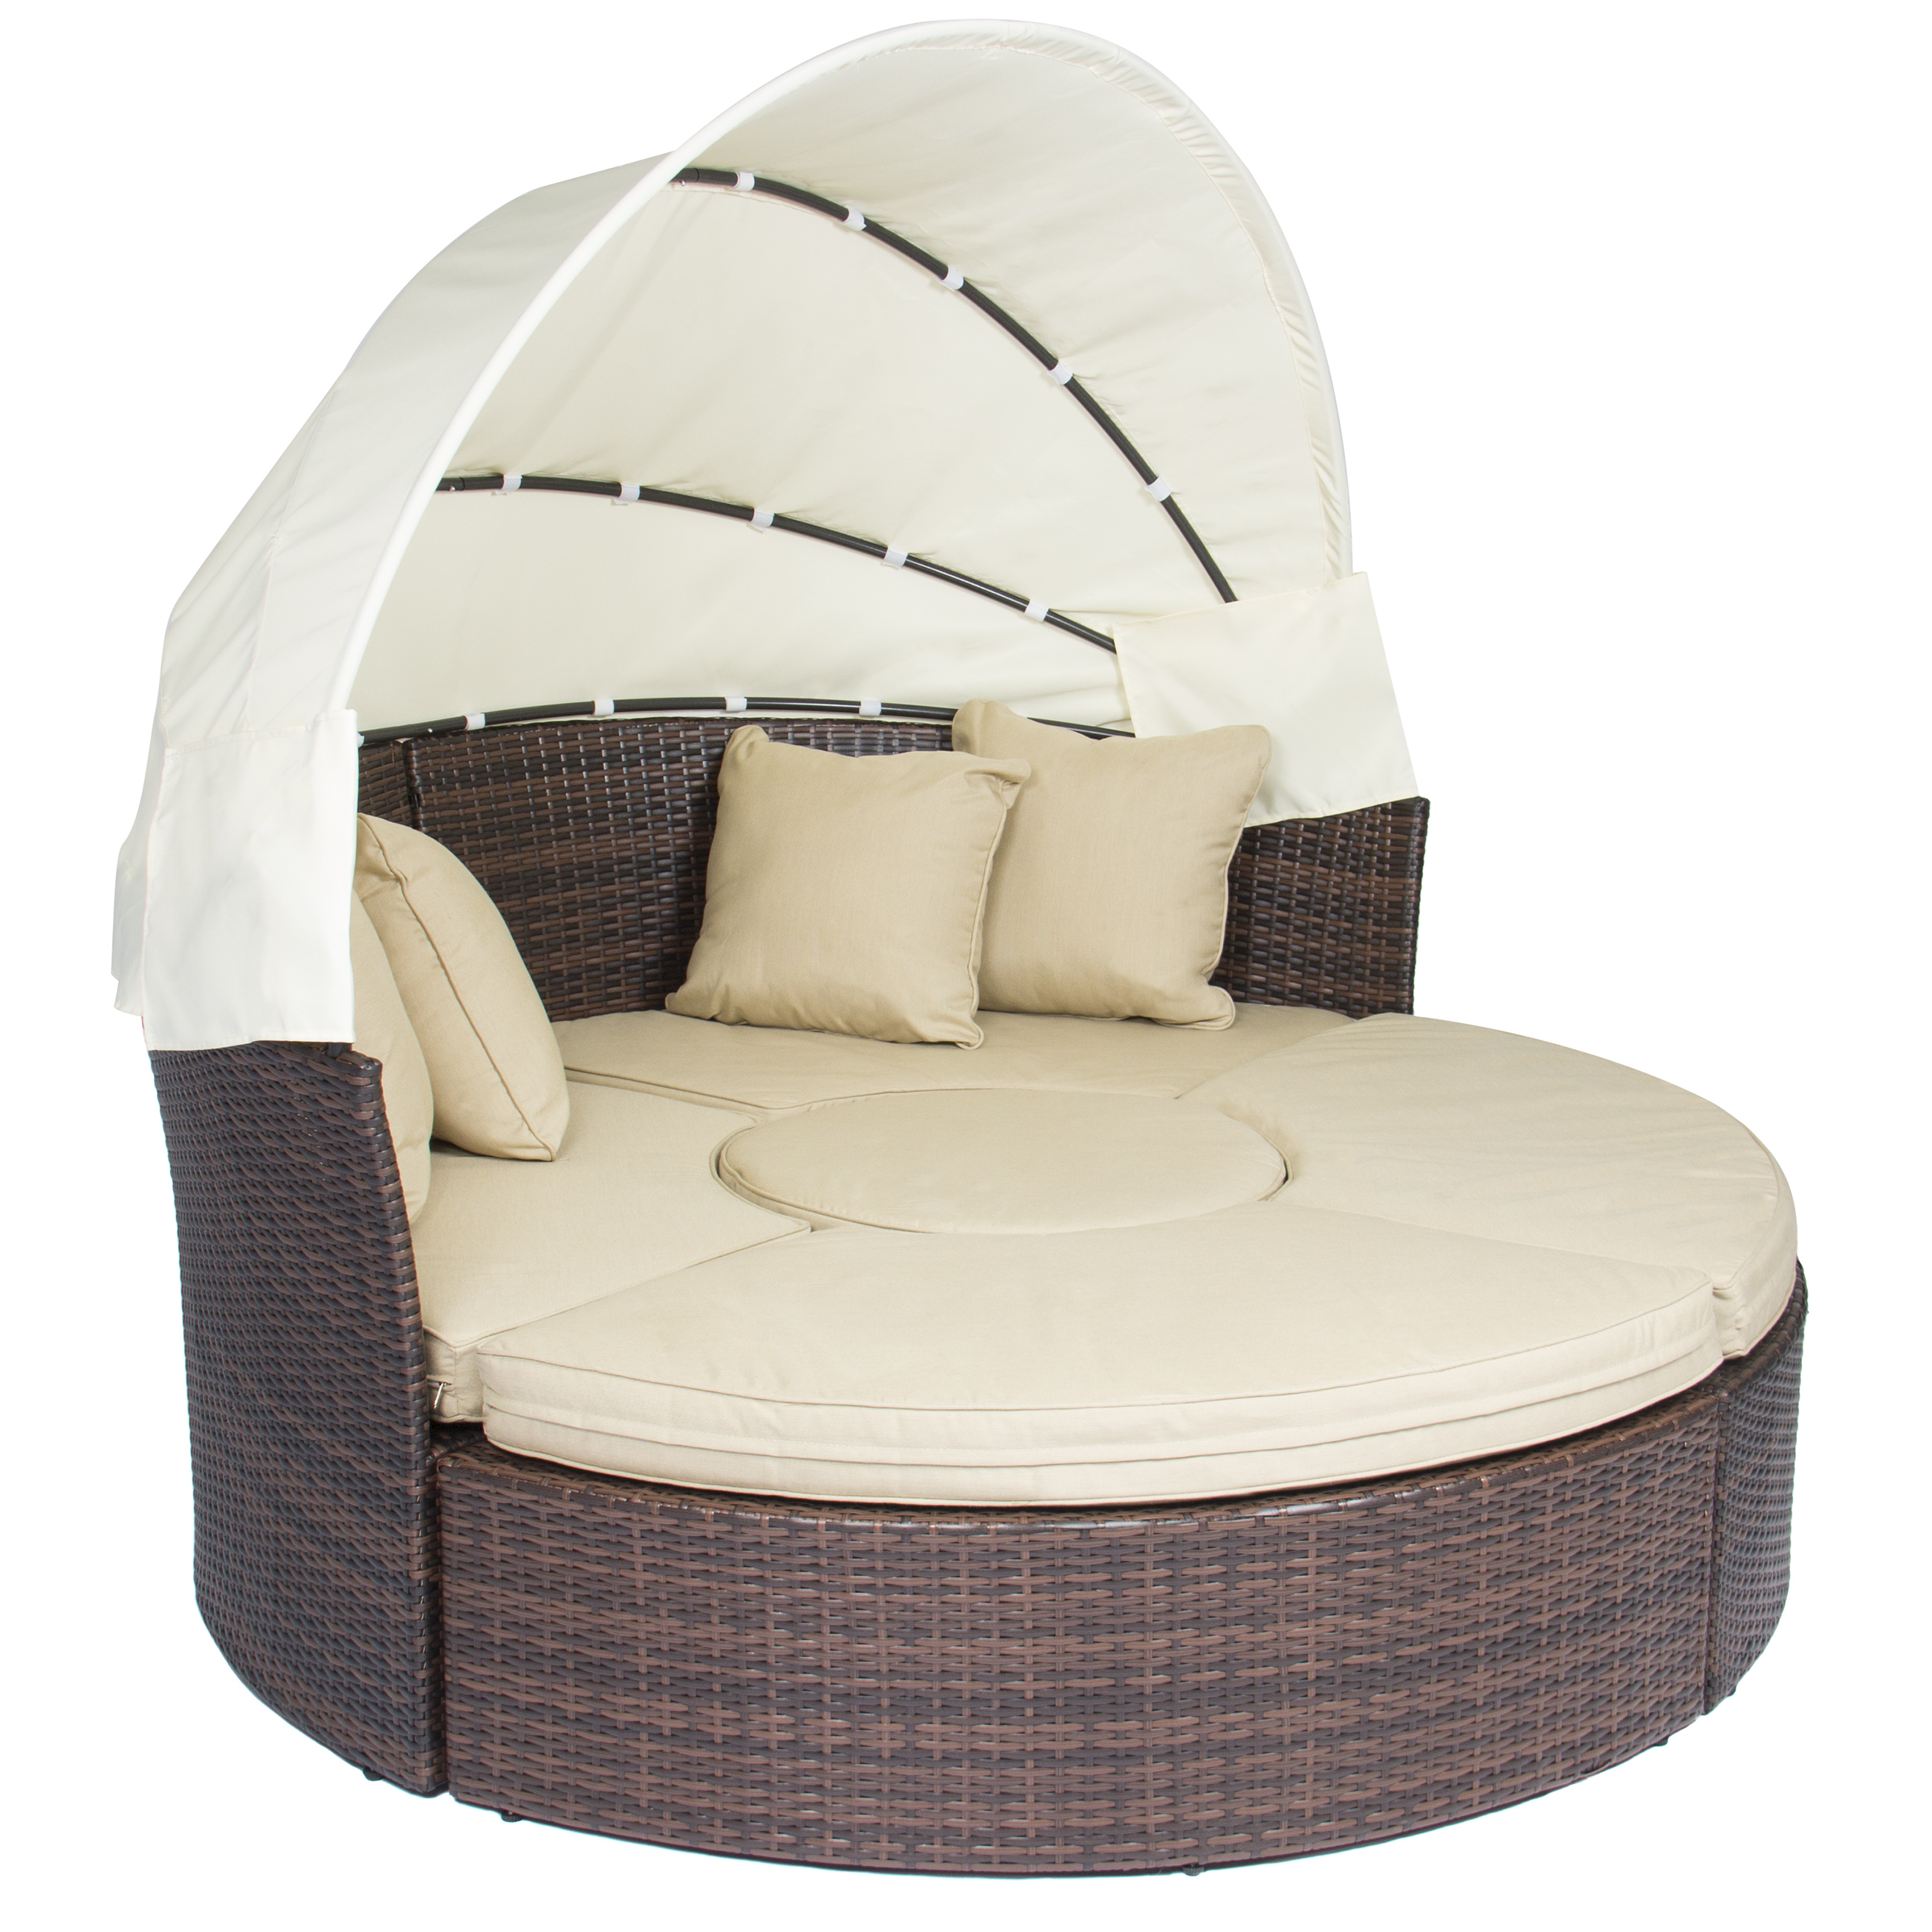 Outdoor Patio Sofa Furniture Round Retractable Canopy Daybed Brown Wicker Rattan  sc 1 st  Walmart.com & Outdoor Patio Sofa Furniture Round Retractable Canopy Daybed Brown ...